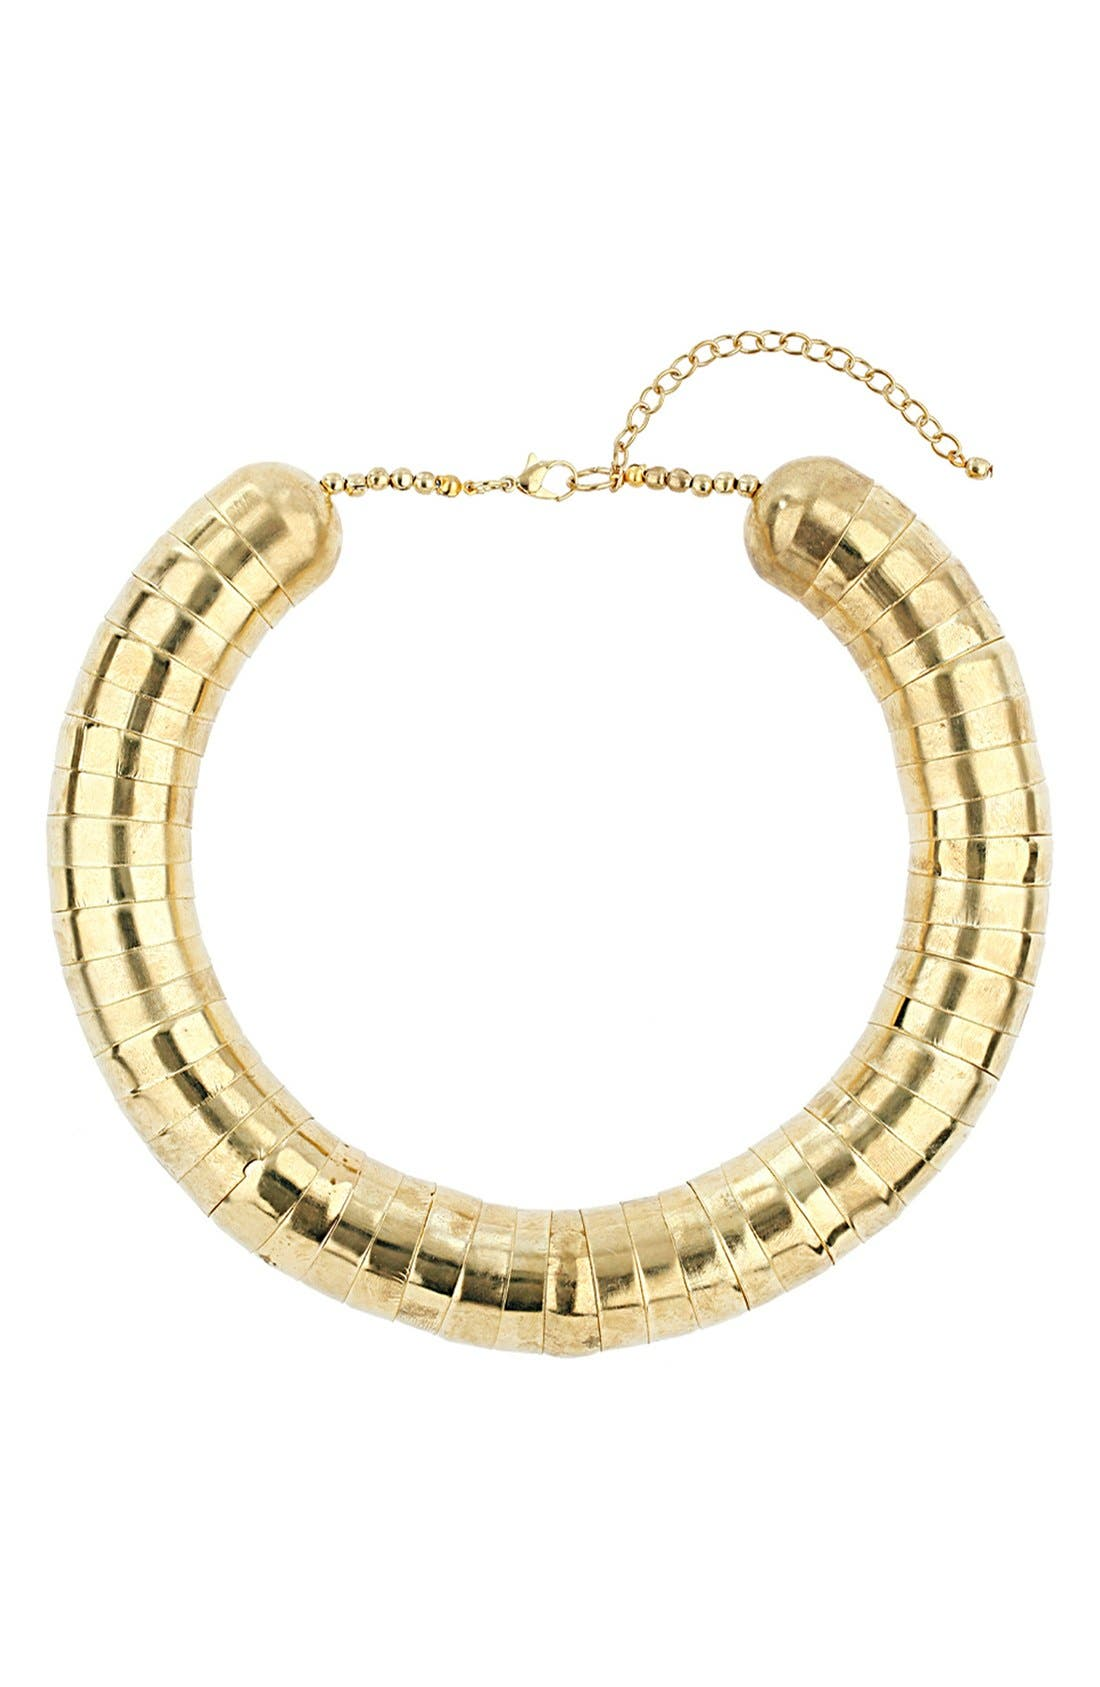 Alternate Image 1 Selected - Topshop Cap Collar Necklace